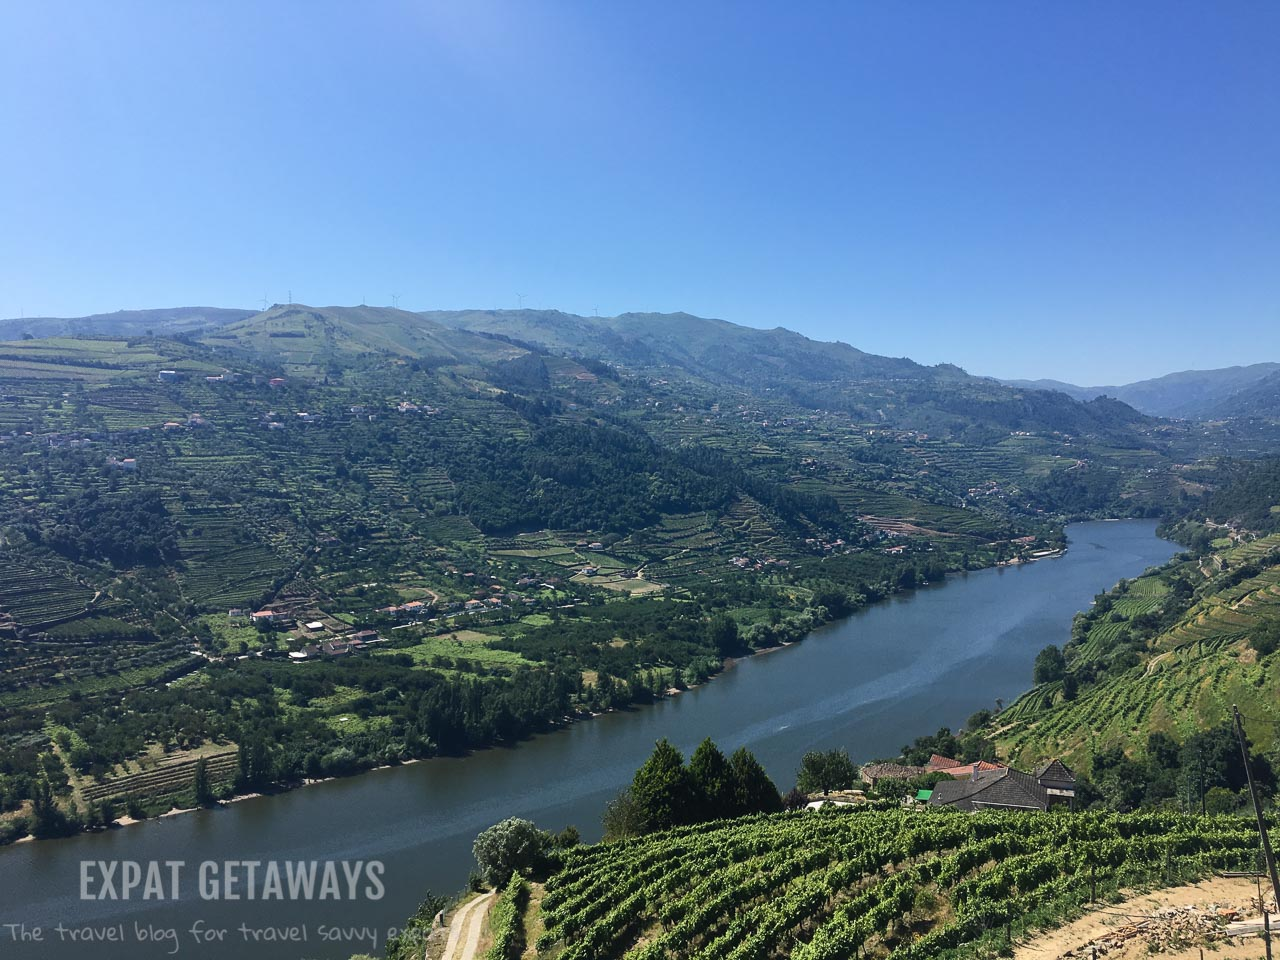 With scenery like this it is hard not to fall in love with the Douro Valley, Portugal. The amazing port is an added bonus!